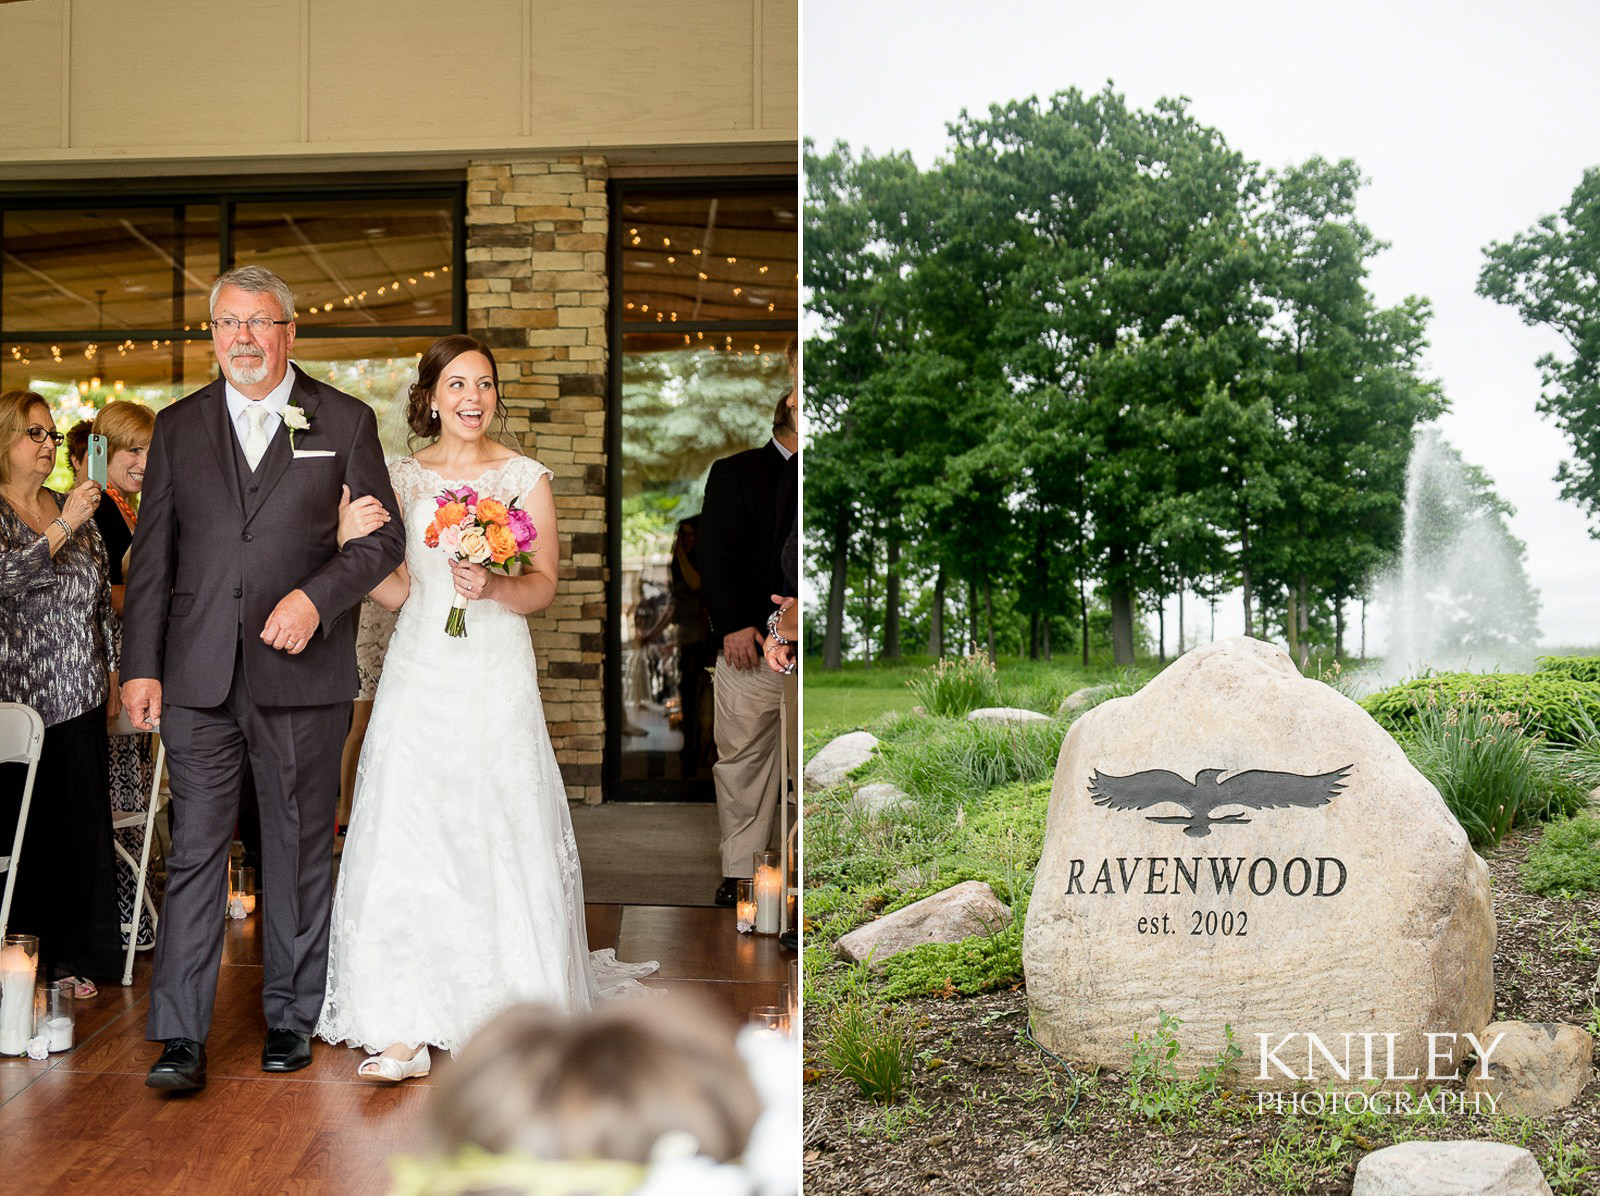 Ravenwood Golf Club wedding pictures - Rochester NY - Kniley Photography - Collage 9.jpg